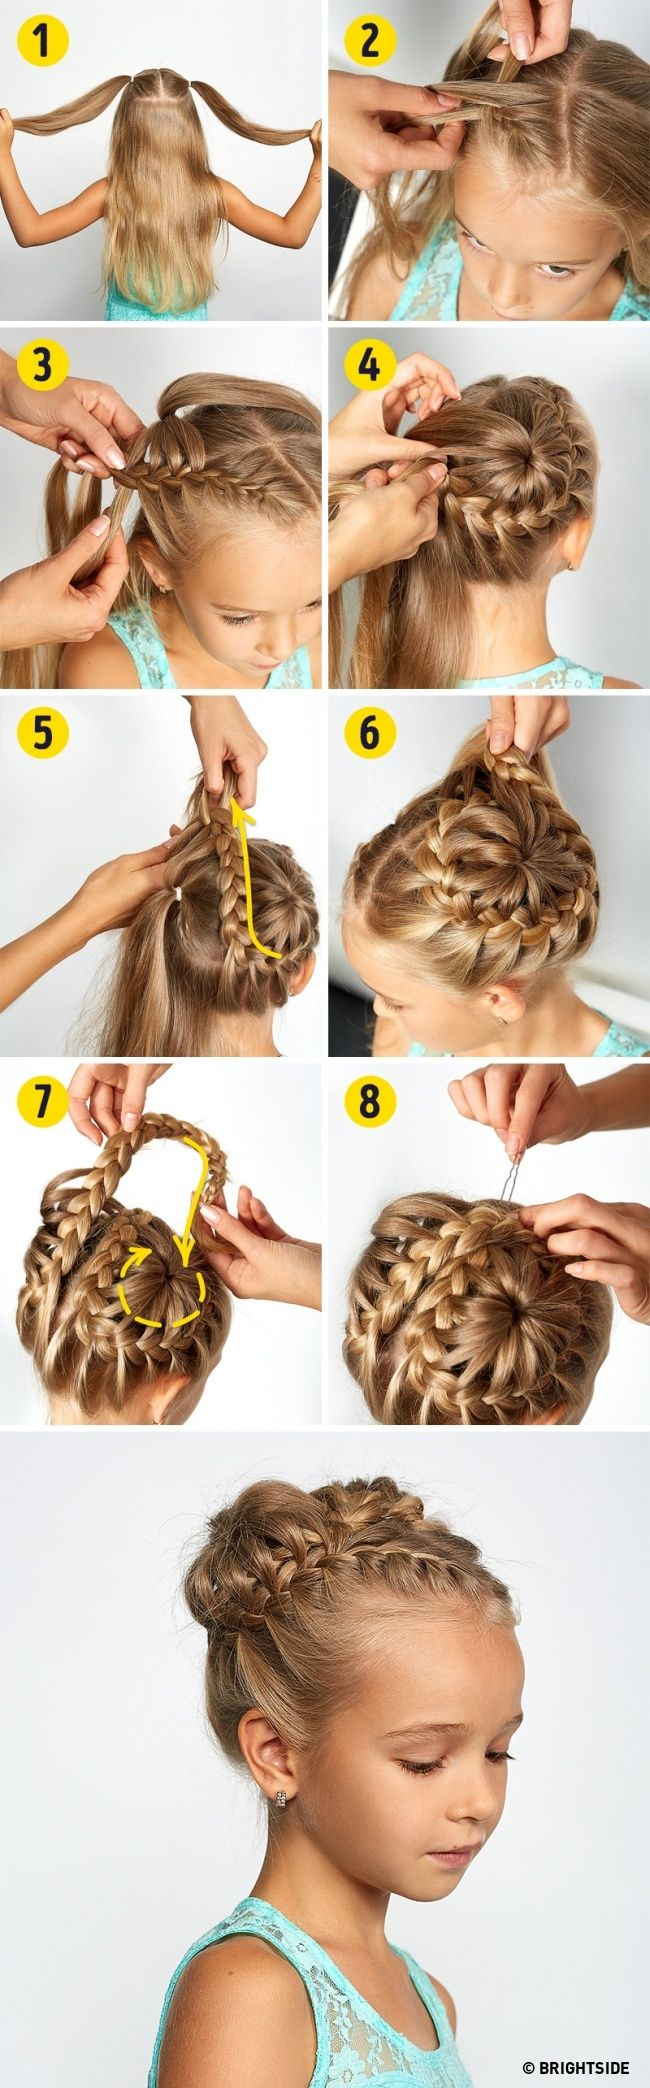 Four hairstyles to make your princess the most beautiful girl at school